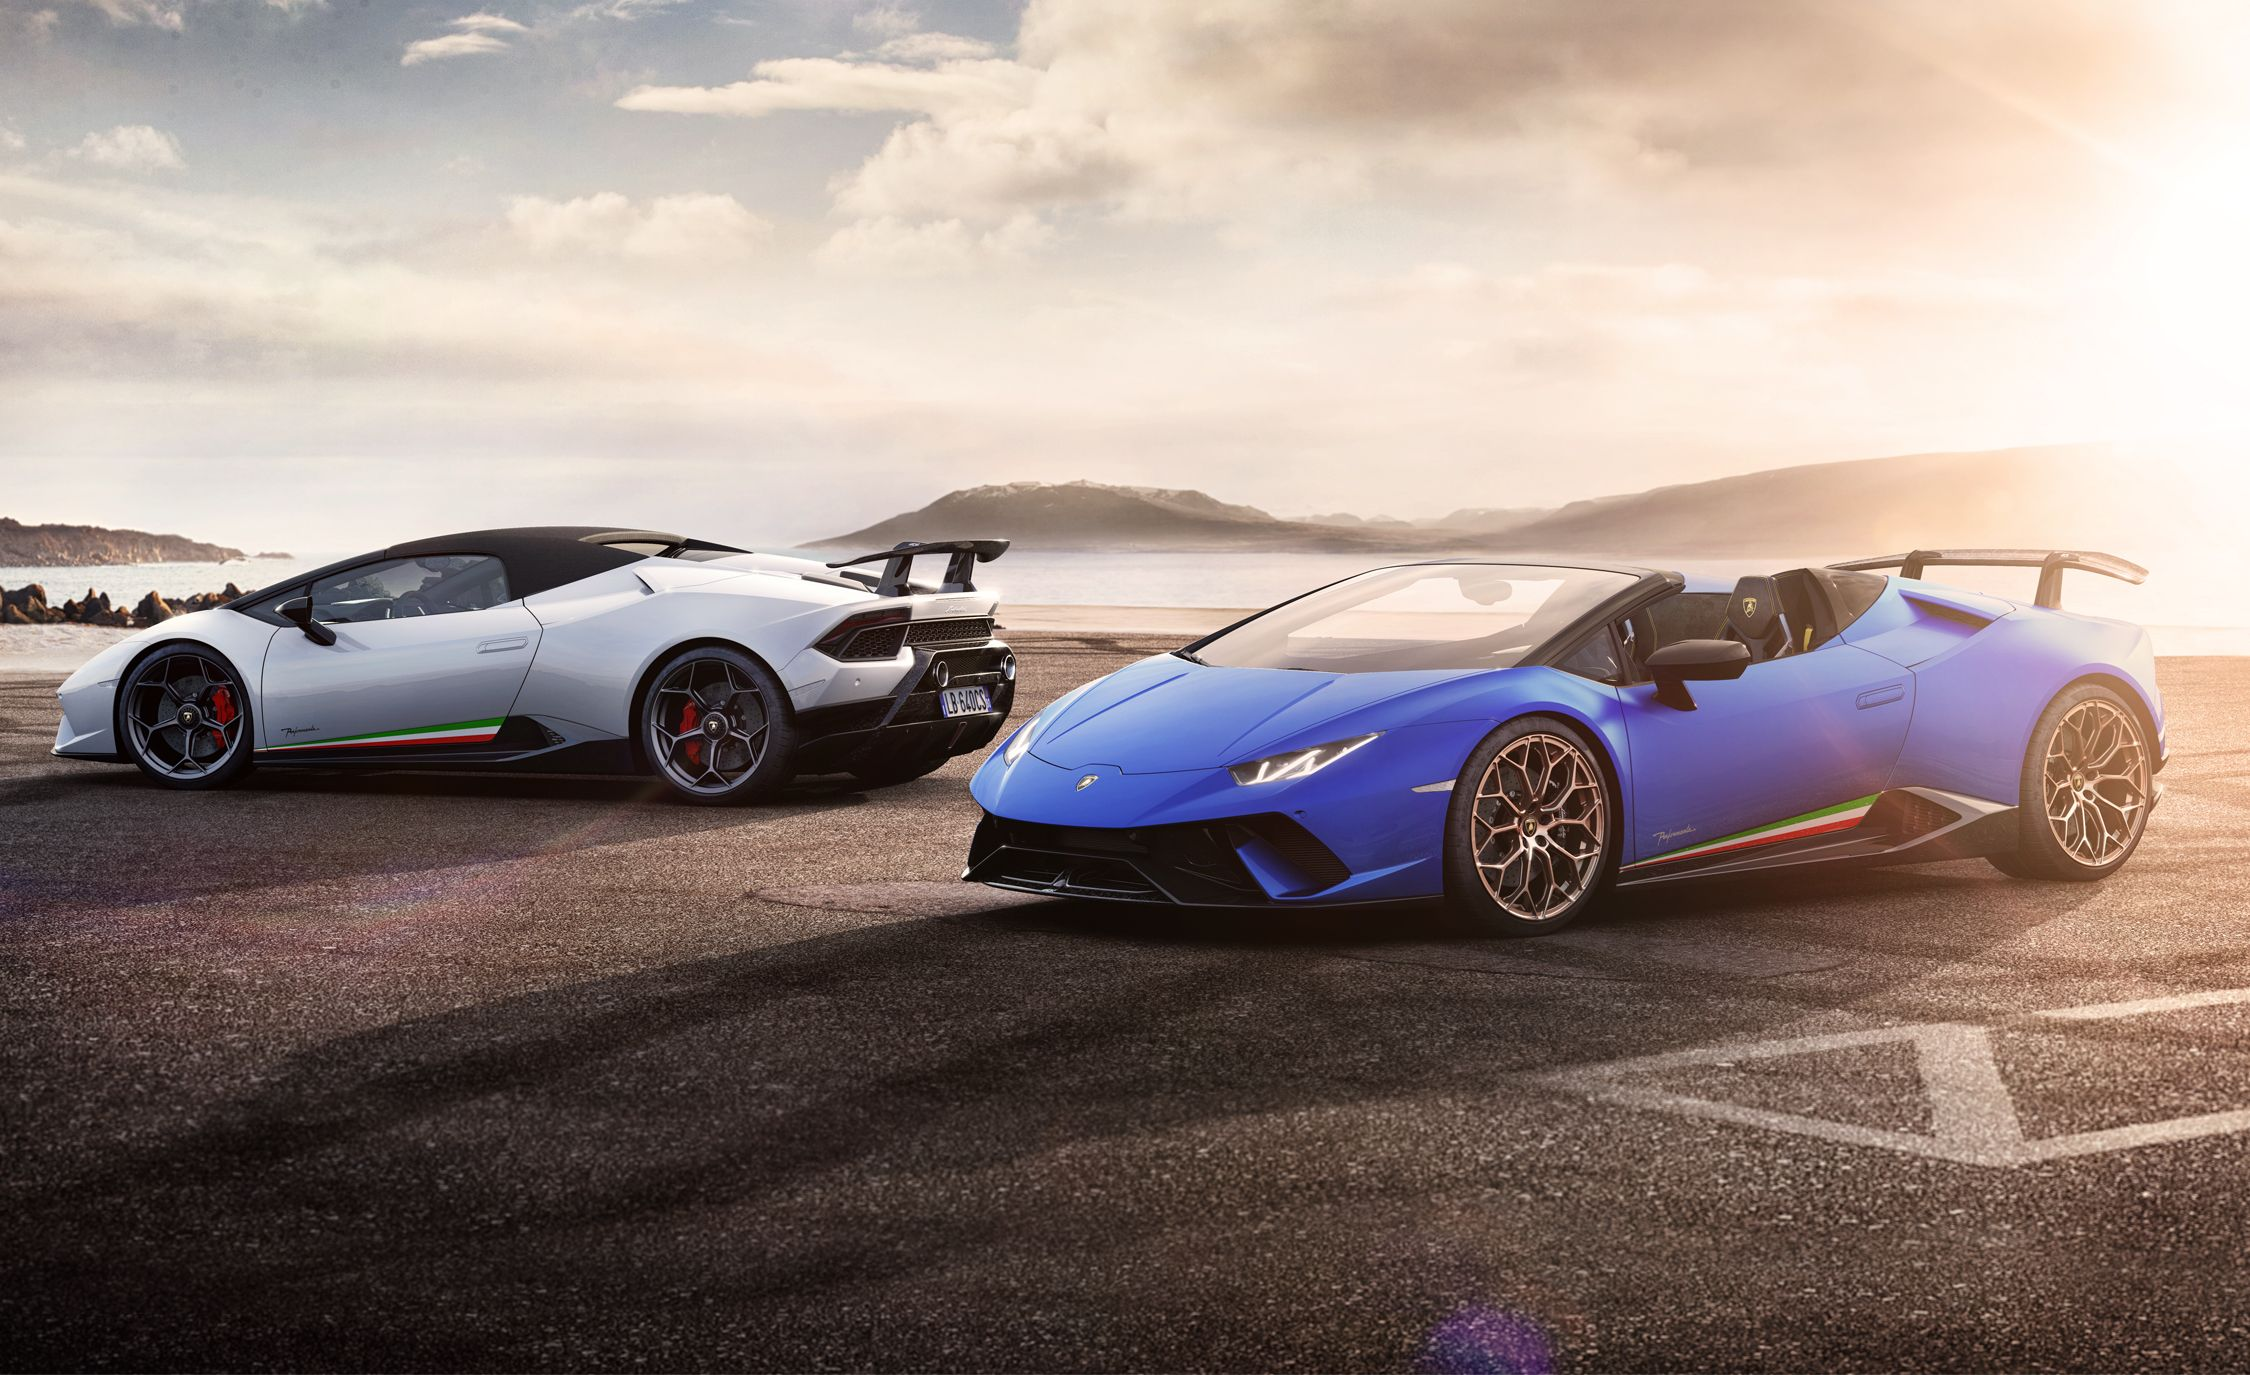 2018 Lamborghini Huracan Performante Spyder Max Performance Headroom News Car And Driver